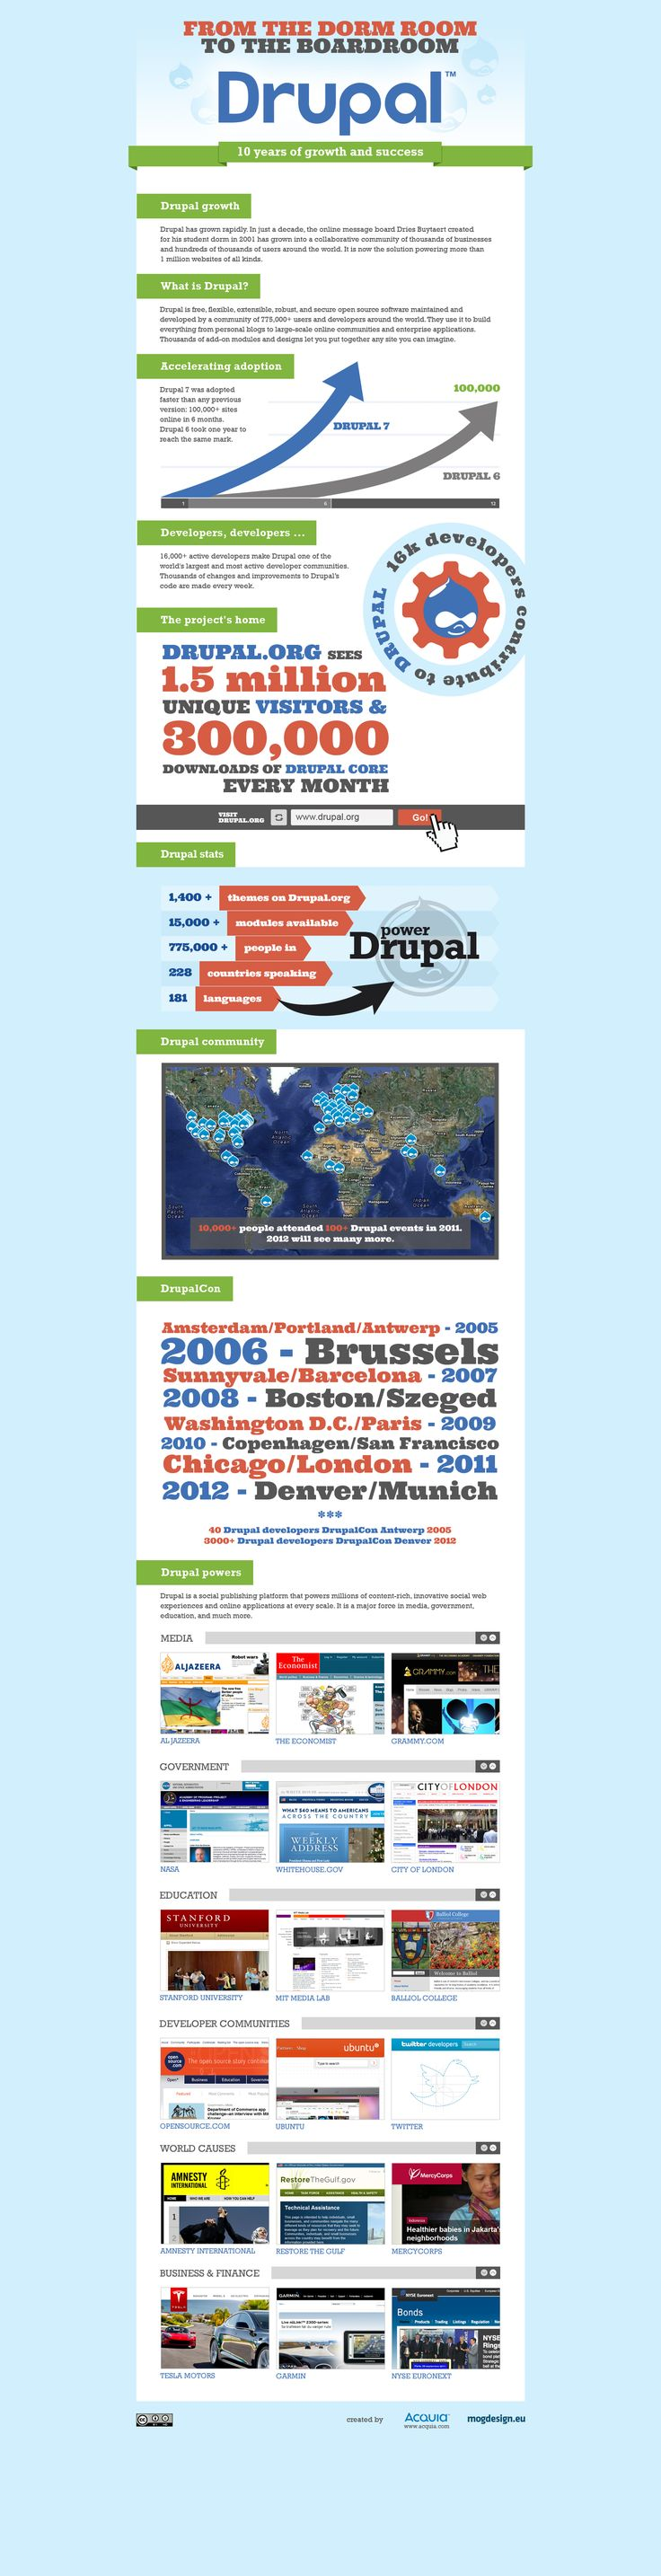 """""""an infographic that illustrates 10 years of Drupal growth, from the dorm room to the boardroom"""""""